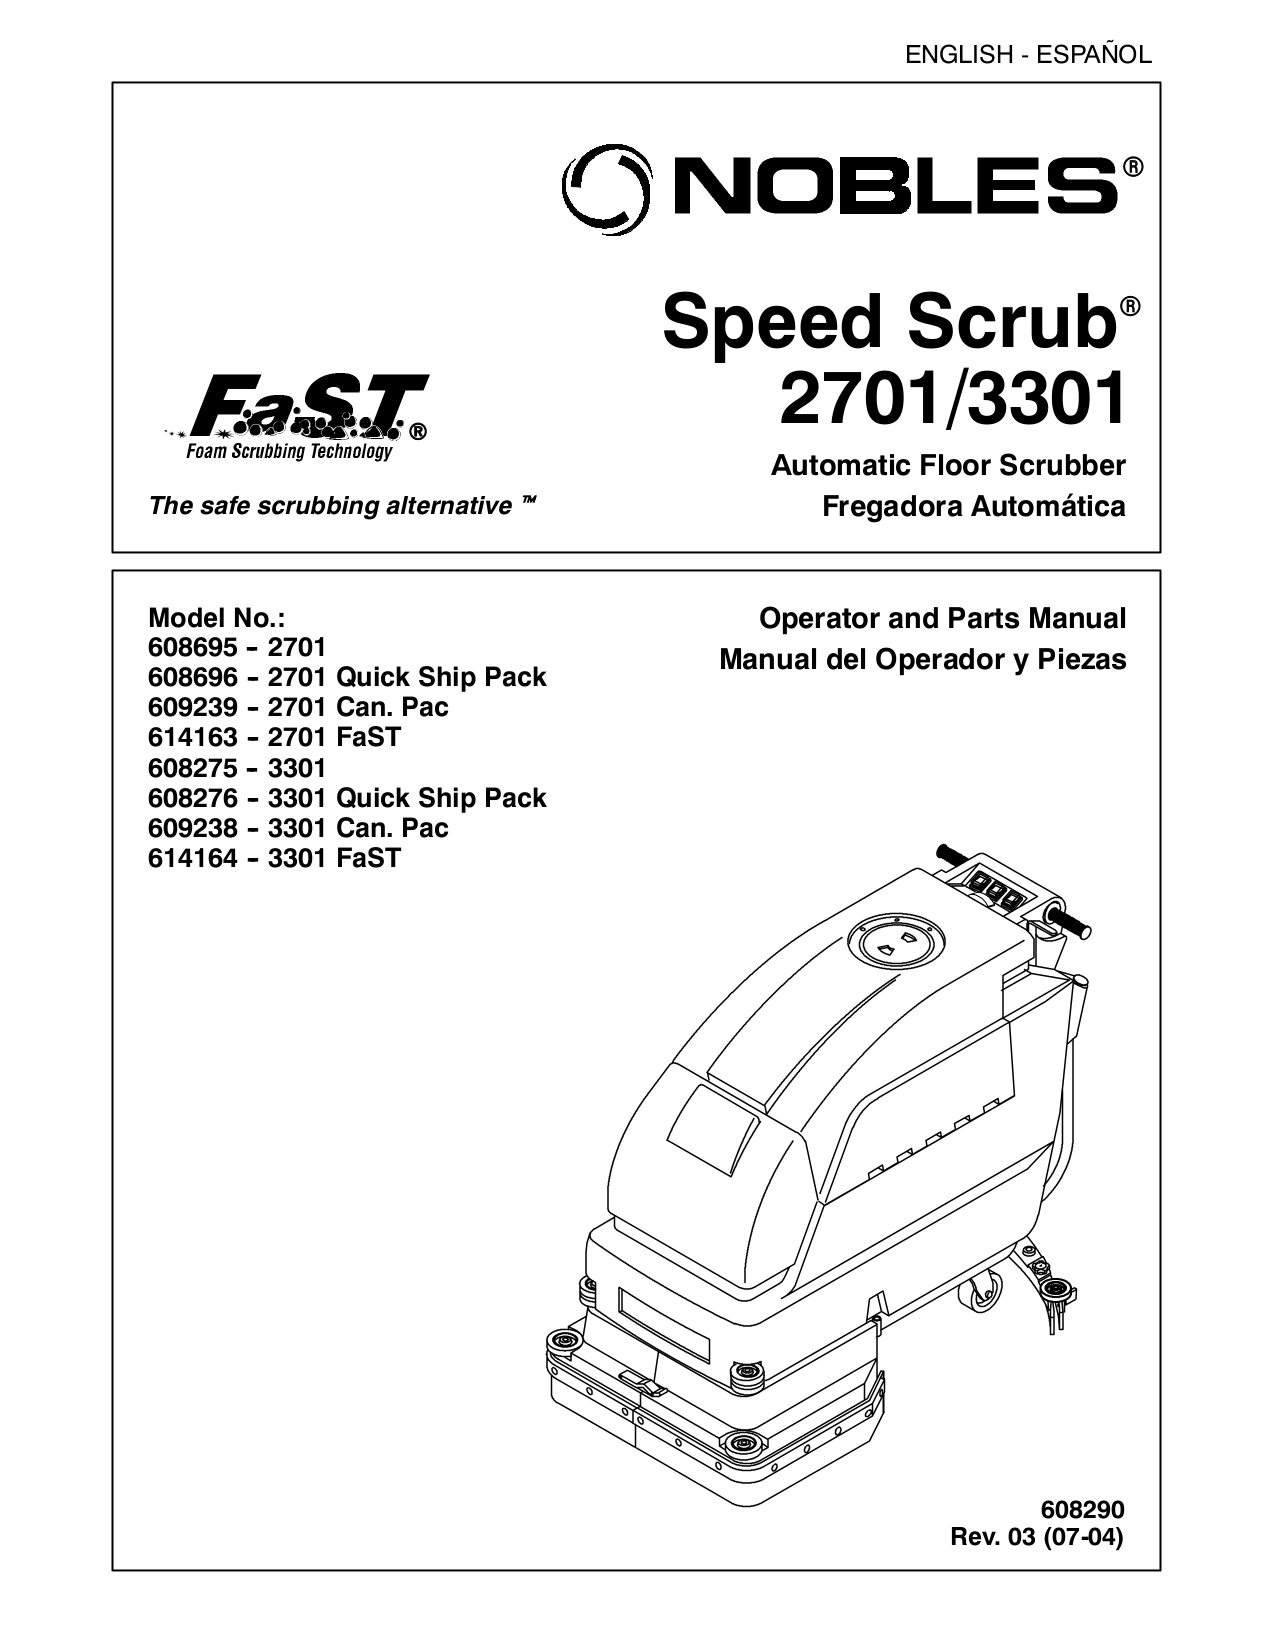 PDF manual for Nobles Other Speed Scrub 3301 Scrubbers